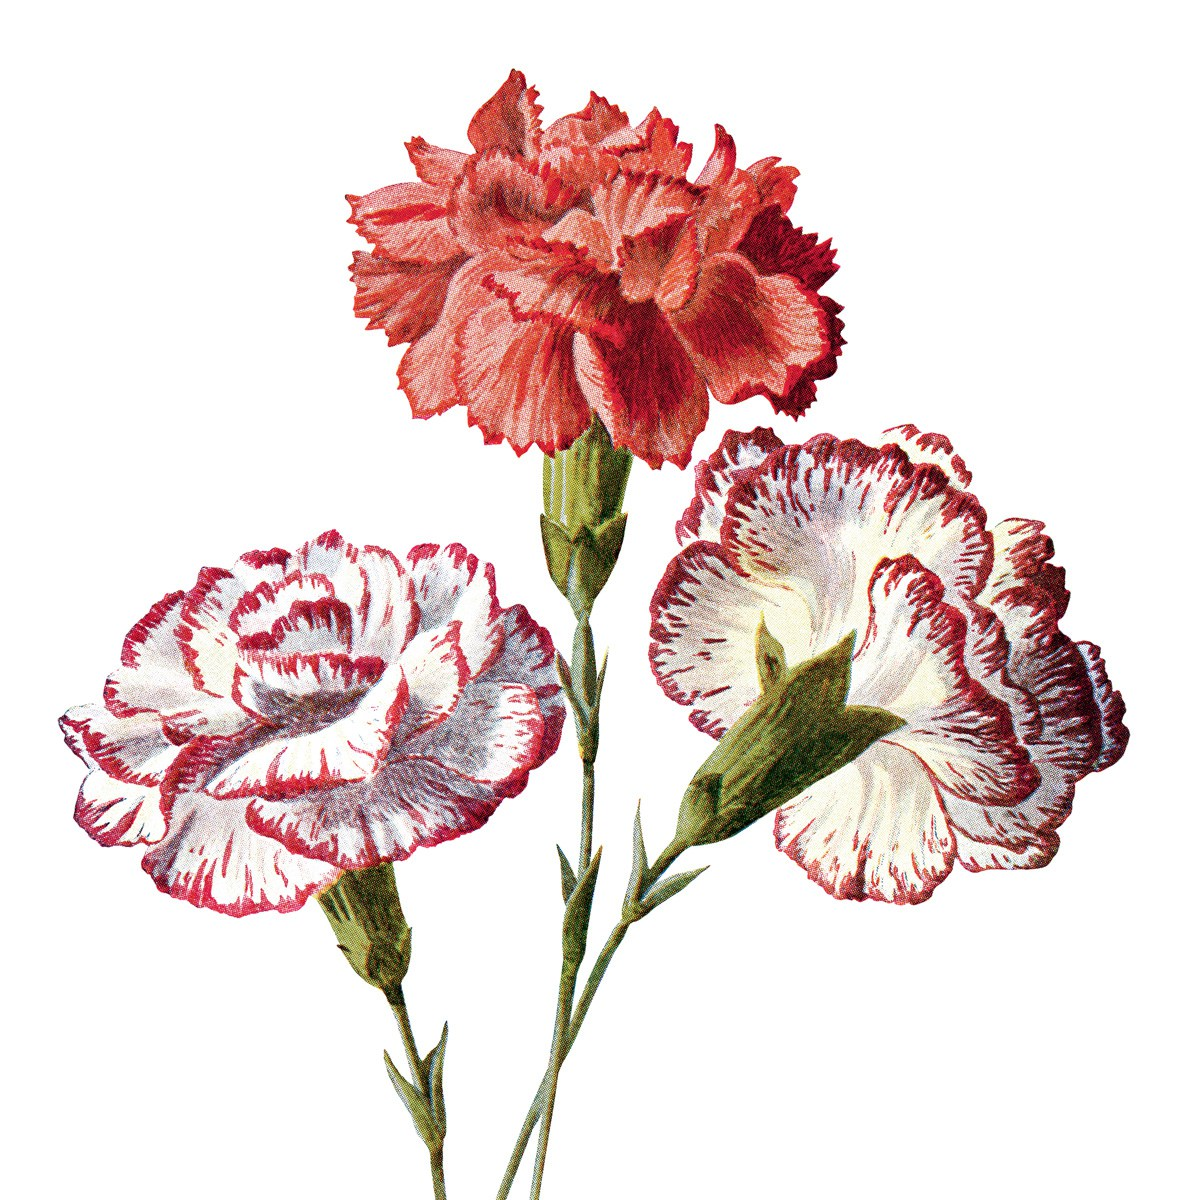 374451682 Carnation family clipart 20 free Cliparts | Download images on ...